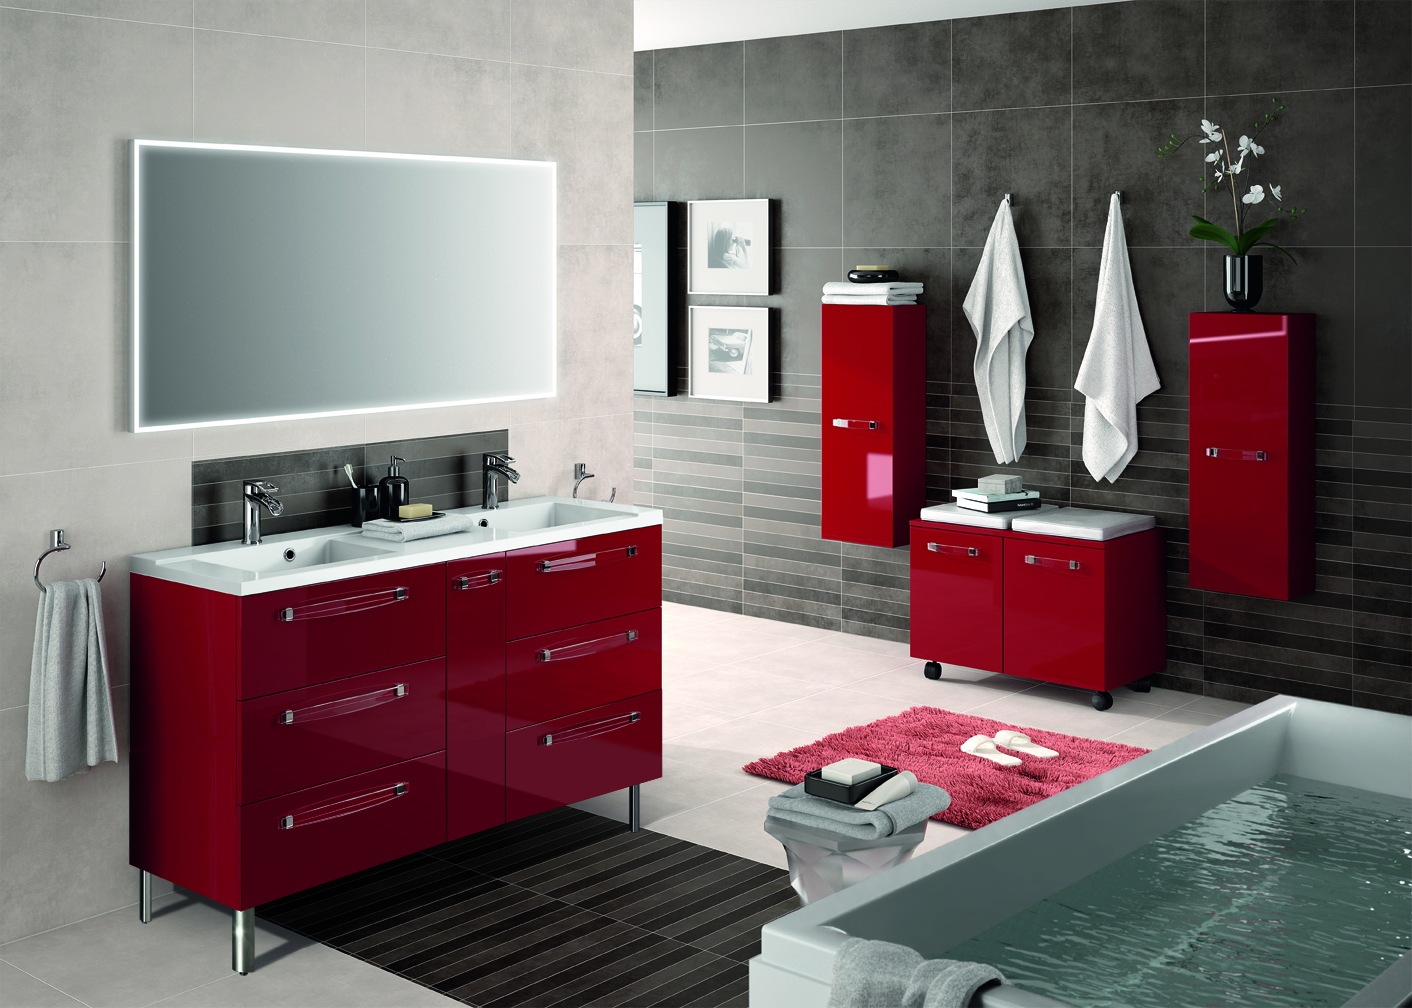 meuble salle de bain rouge ikea maison design. Black Bedroom Furniture Sets. Home Design Ideas